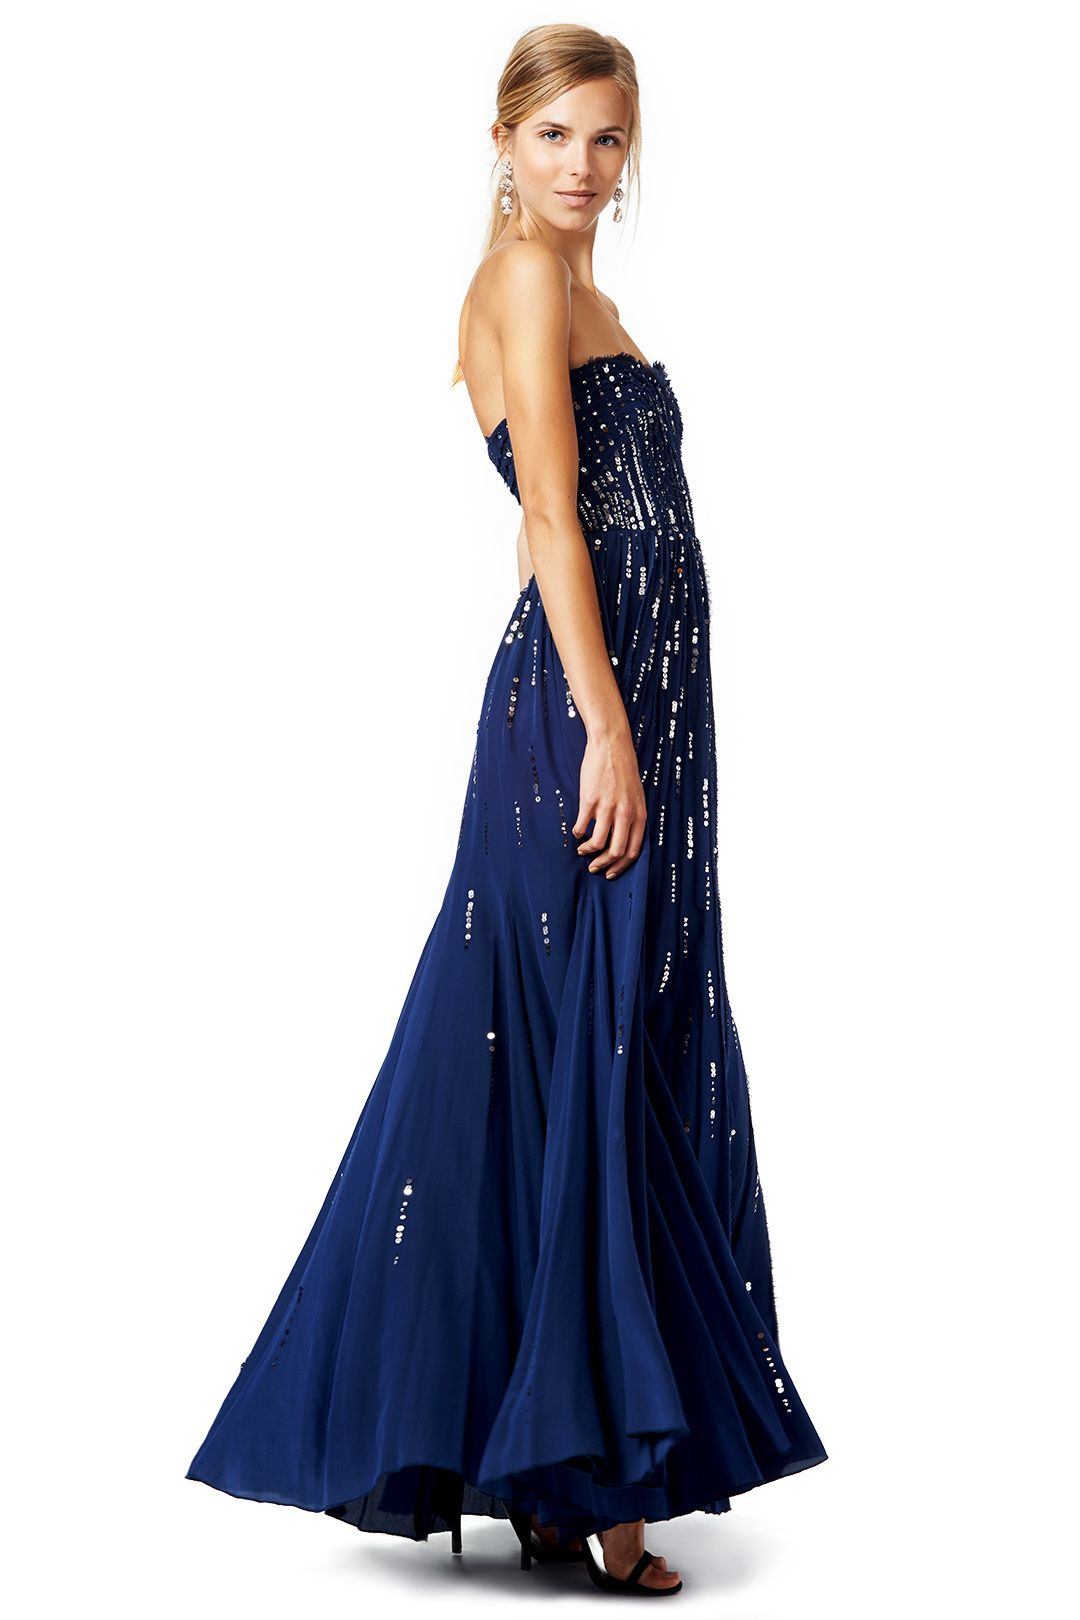 Meteor Shower Gown | Prom Picks | Pinterest | Meteor shower, Rebecca ...